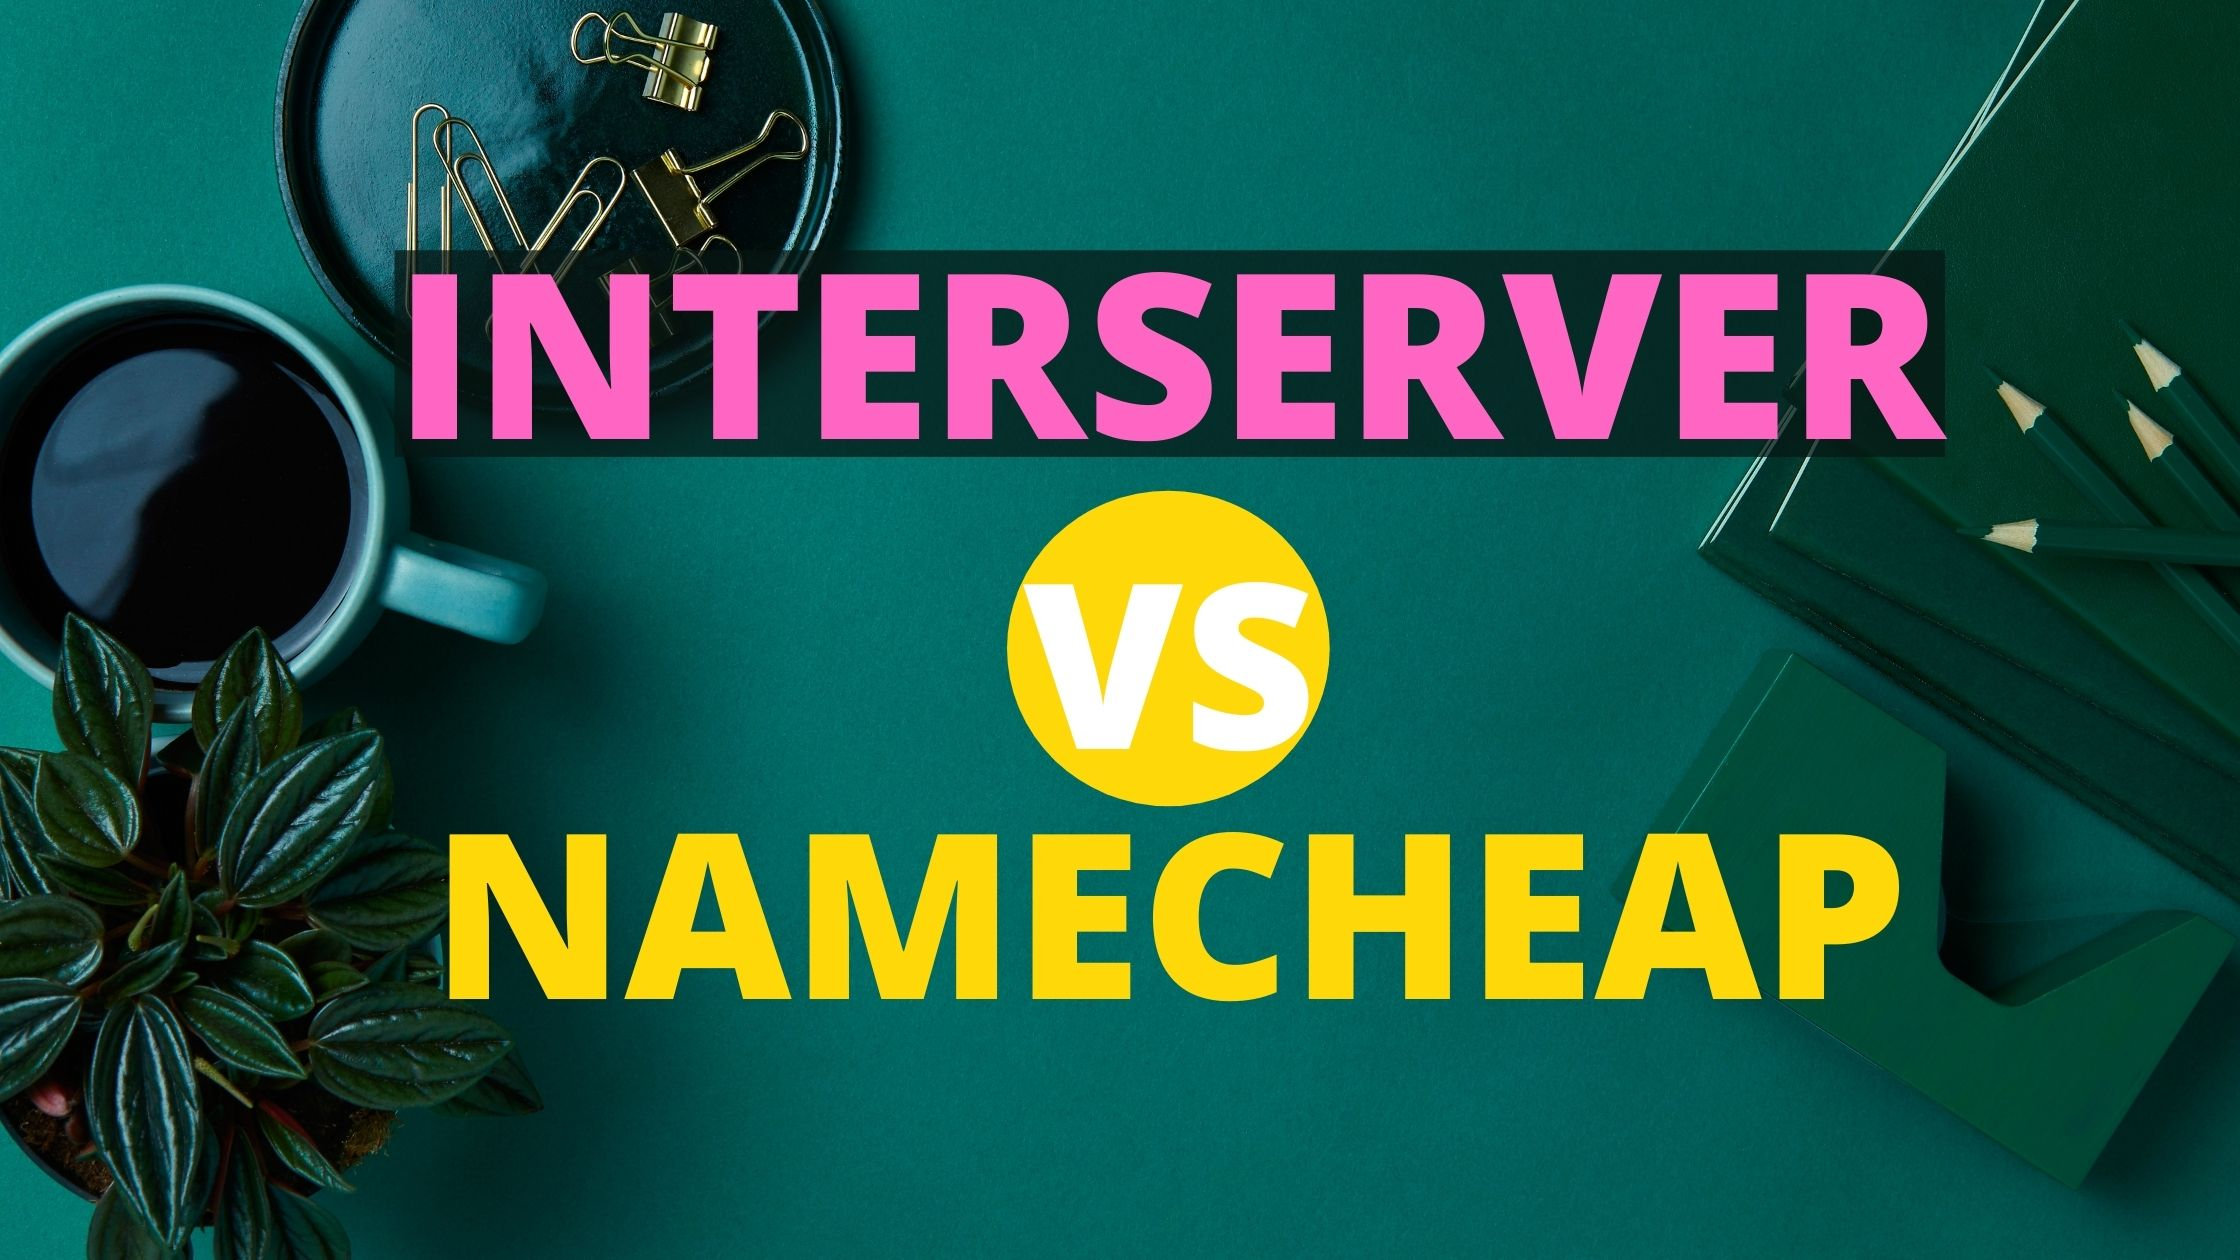 Interserver Vs Namecheap Review 2021: Detailed Side by Side Comparison